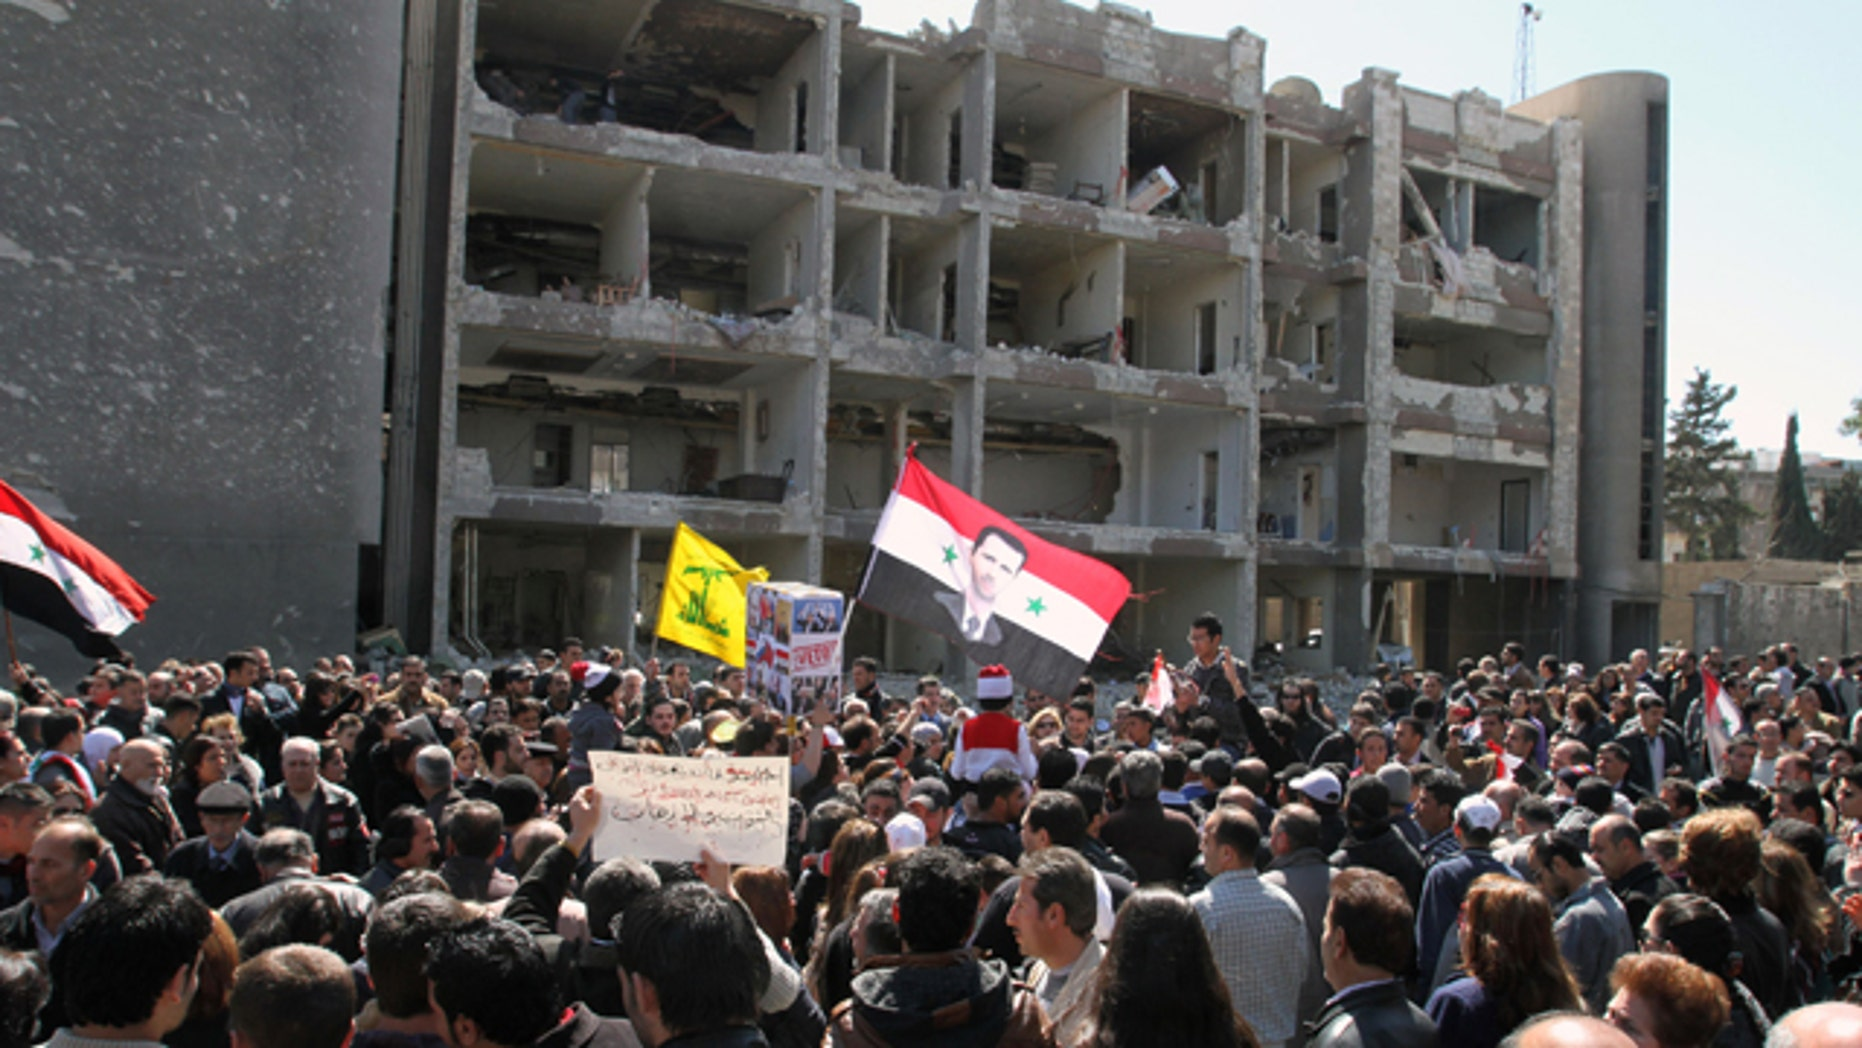 """March 18, 2012: Thousands of people wave Syrian flags, one depicting President Bashar Assad, observe a silent march in front of a damaged government building on al-Qassa street in Damascus, Syria in memory of people who were killed a day earlier by two attacks in the capital Damascus. Three suicide bombings in the capital Damascus on Saturday killed several people. The government blamed those on the opposition, which it claims is made up of """"terrorist"""" groups carrying out a foreign conspiracy."""